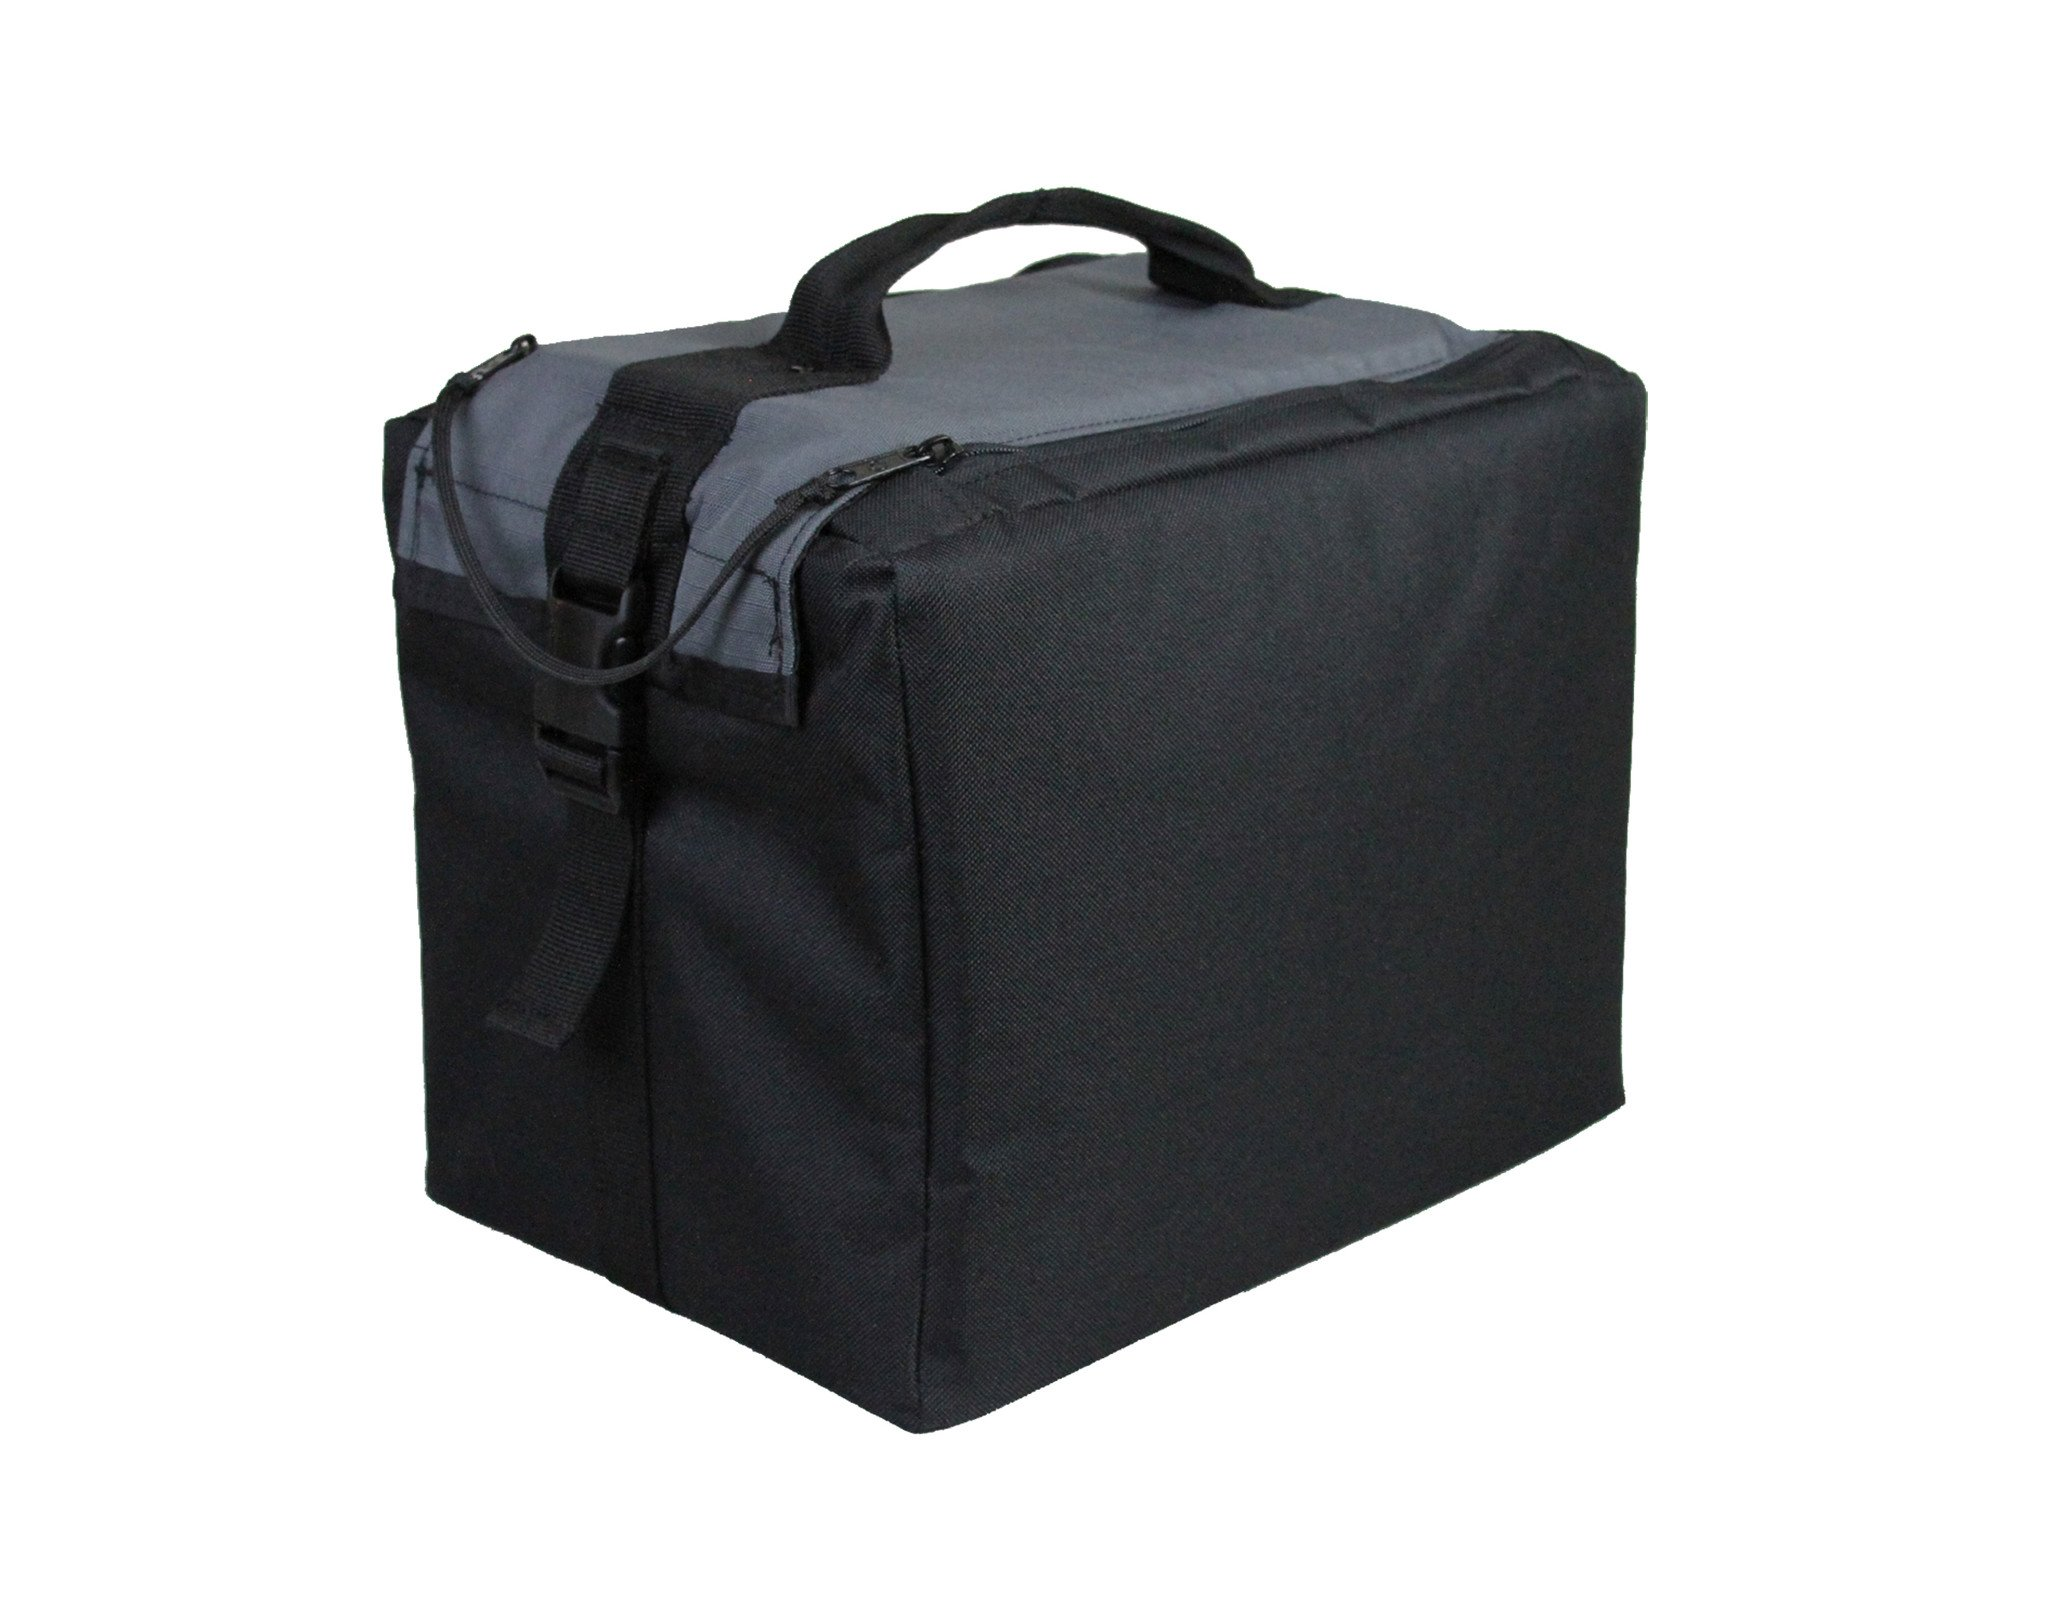 ATV TEK, 24 Pack Universal Cooler Bag, Fits Perfectly in Arch Series Bags - Black